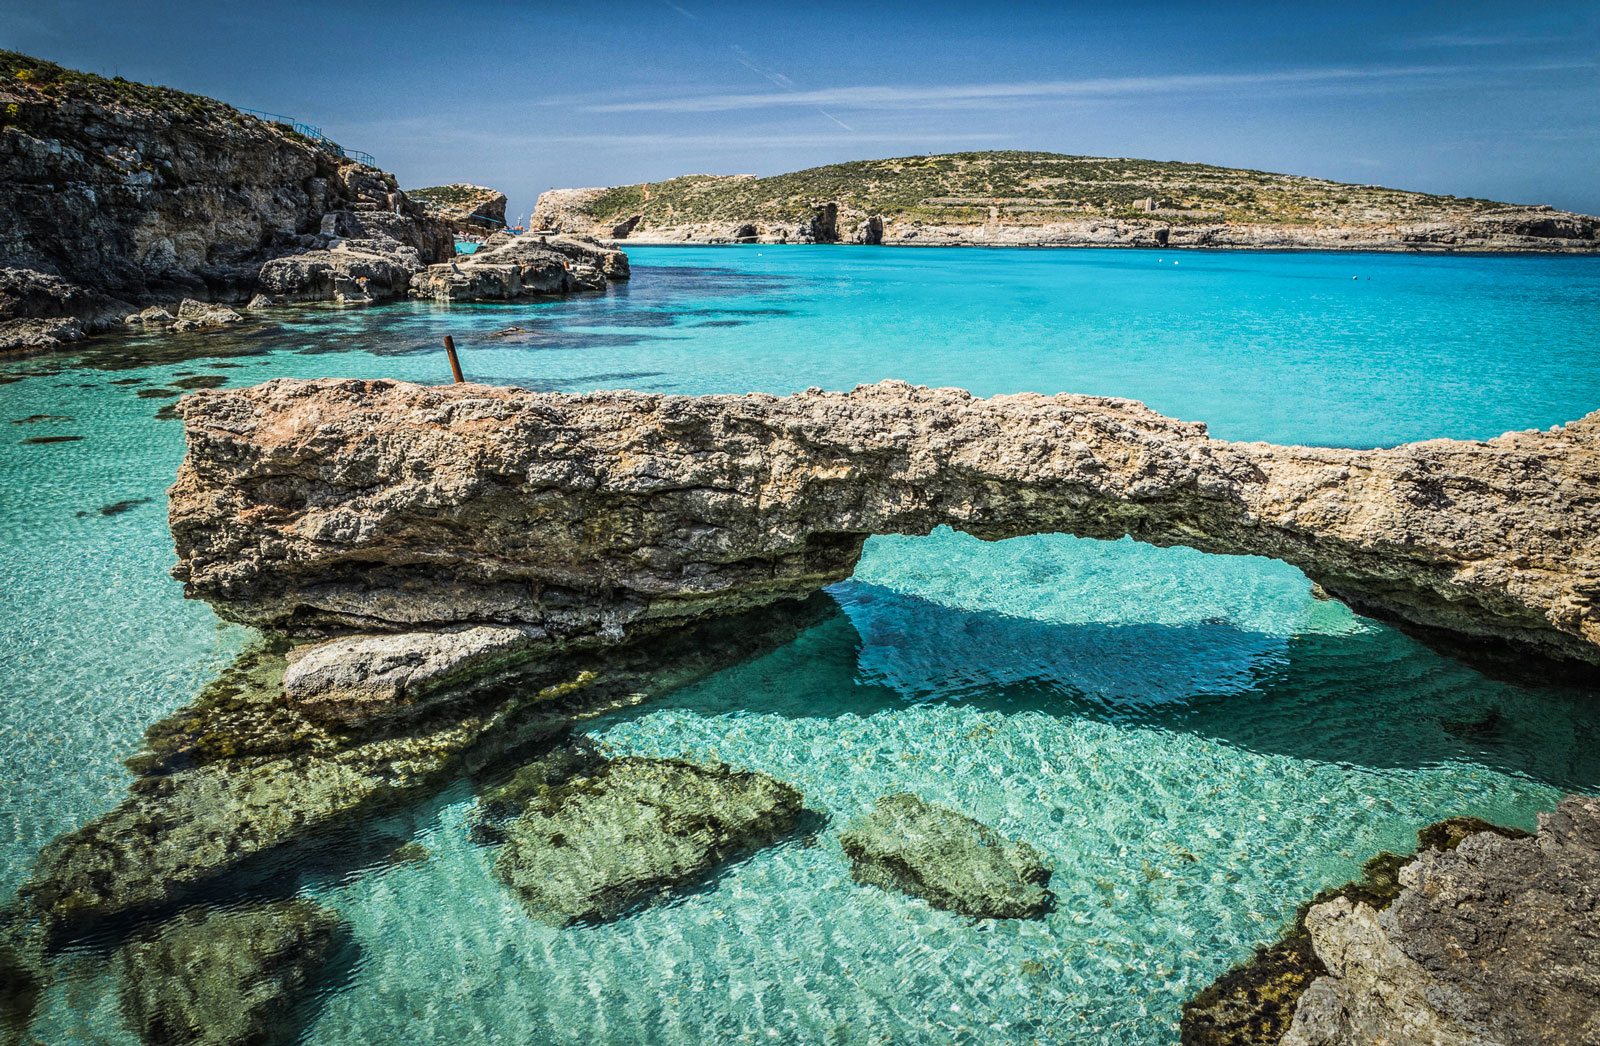 Blue Lagoon Malta 9 Things You Need To Know Before You Visit